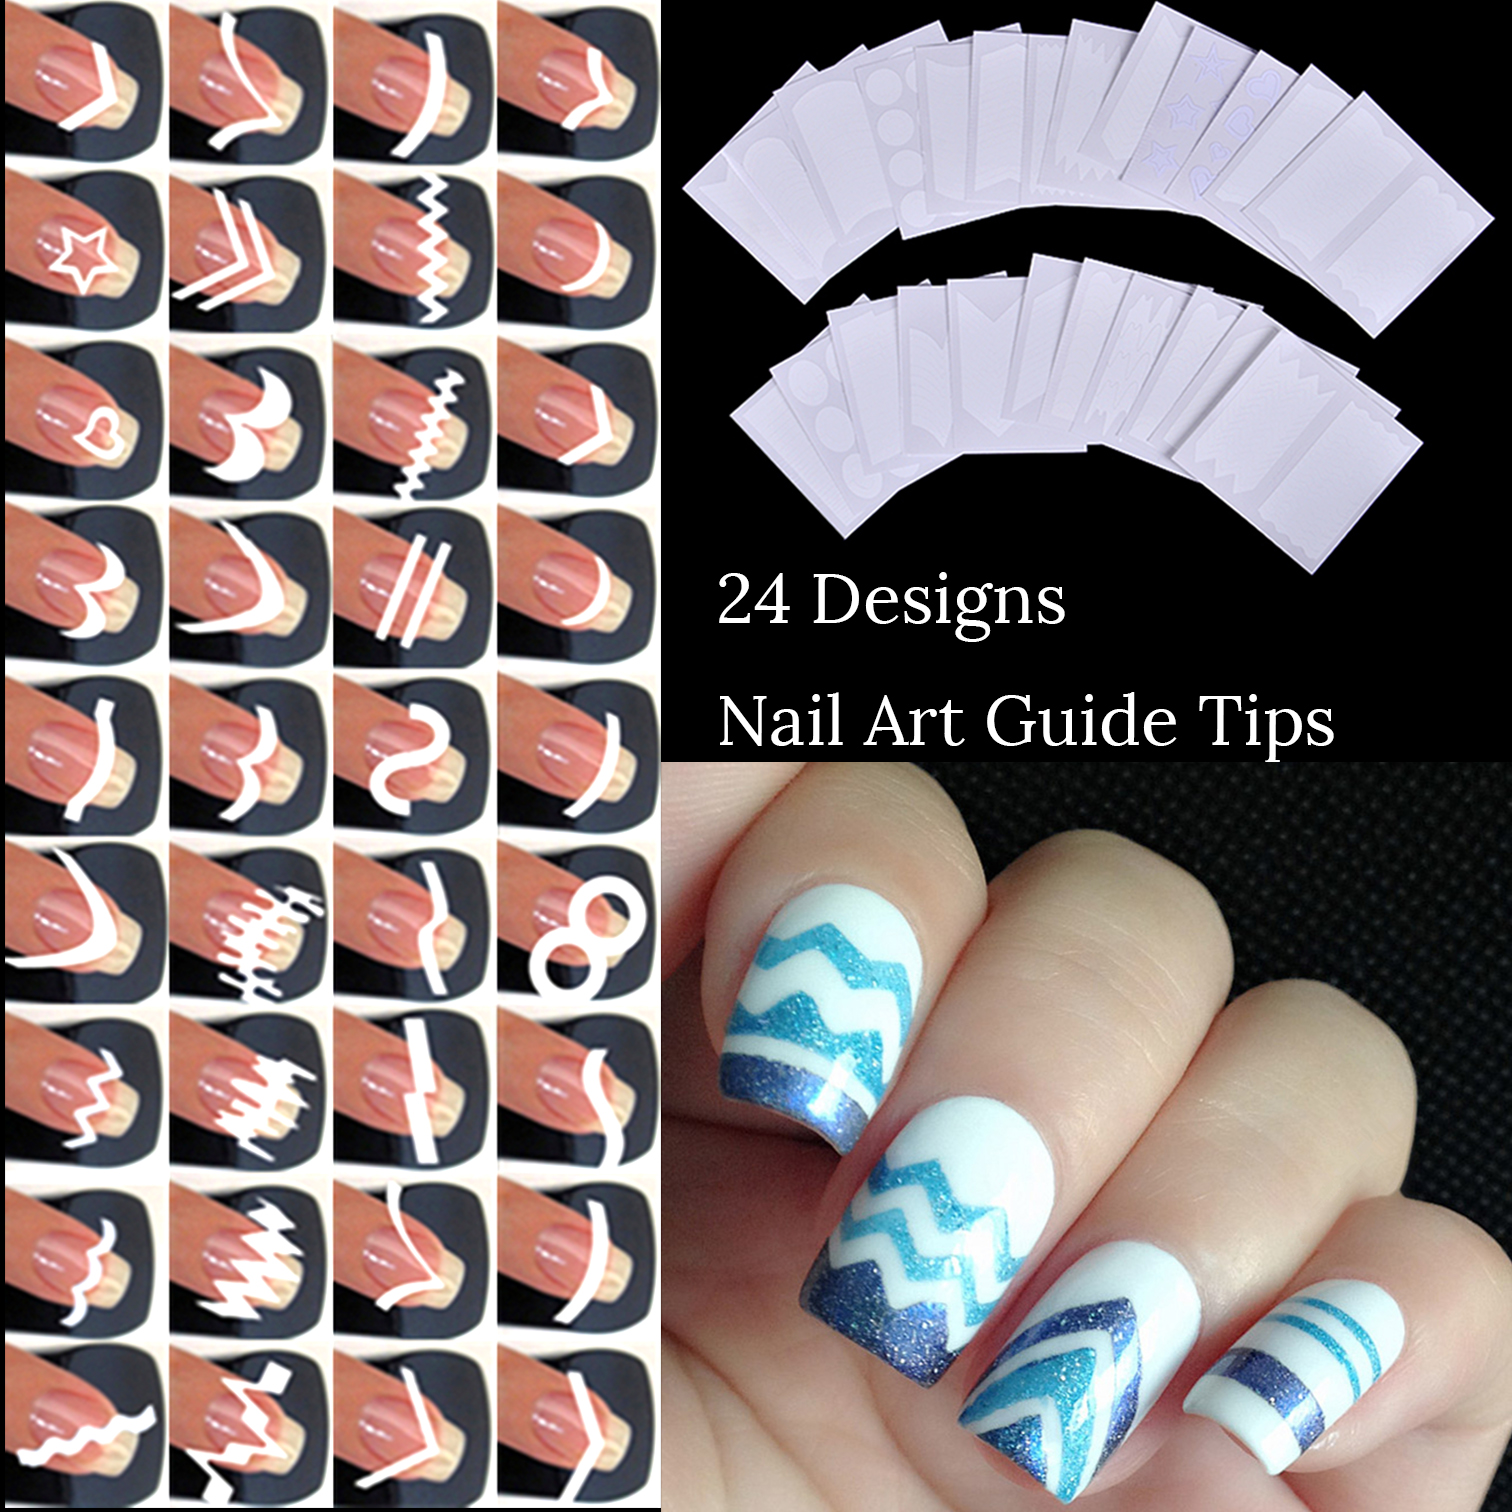 Aliexpress 24 Designs Nail Art Guide Tips From Fringe Guides Diy Sticker 3d Manicure Polish Hollow Stencils French Nails Reliable